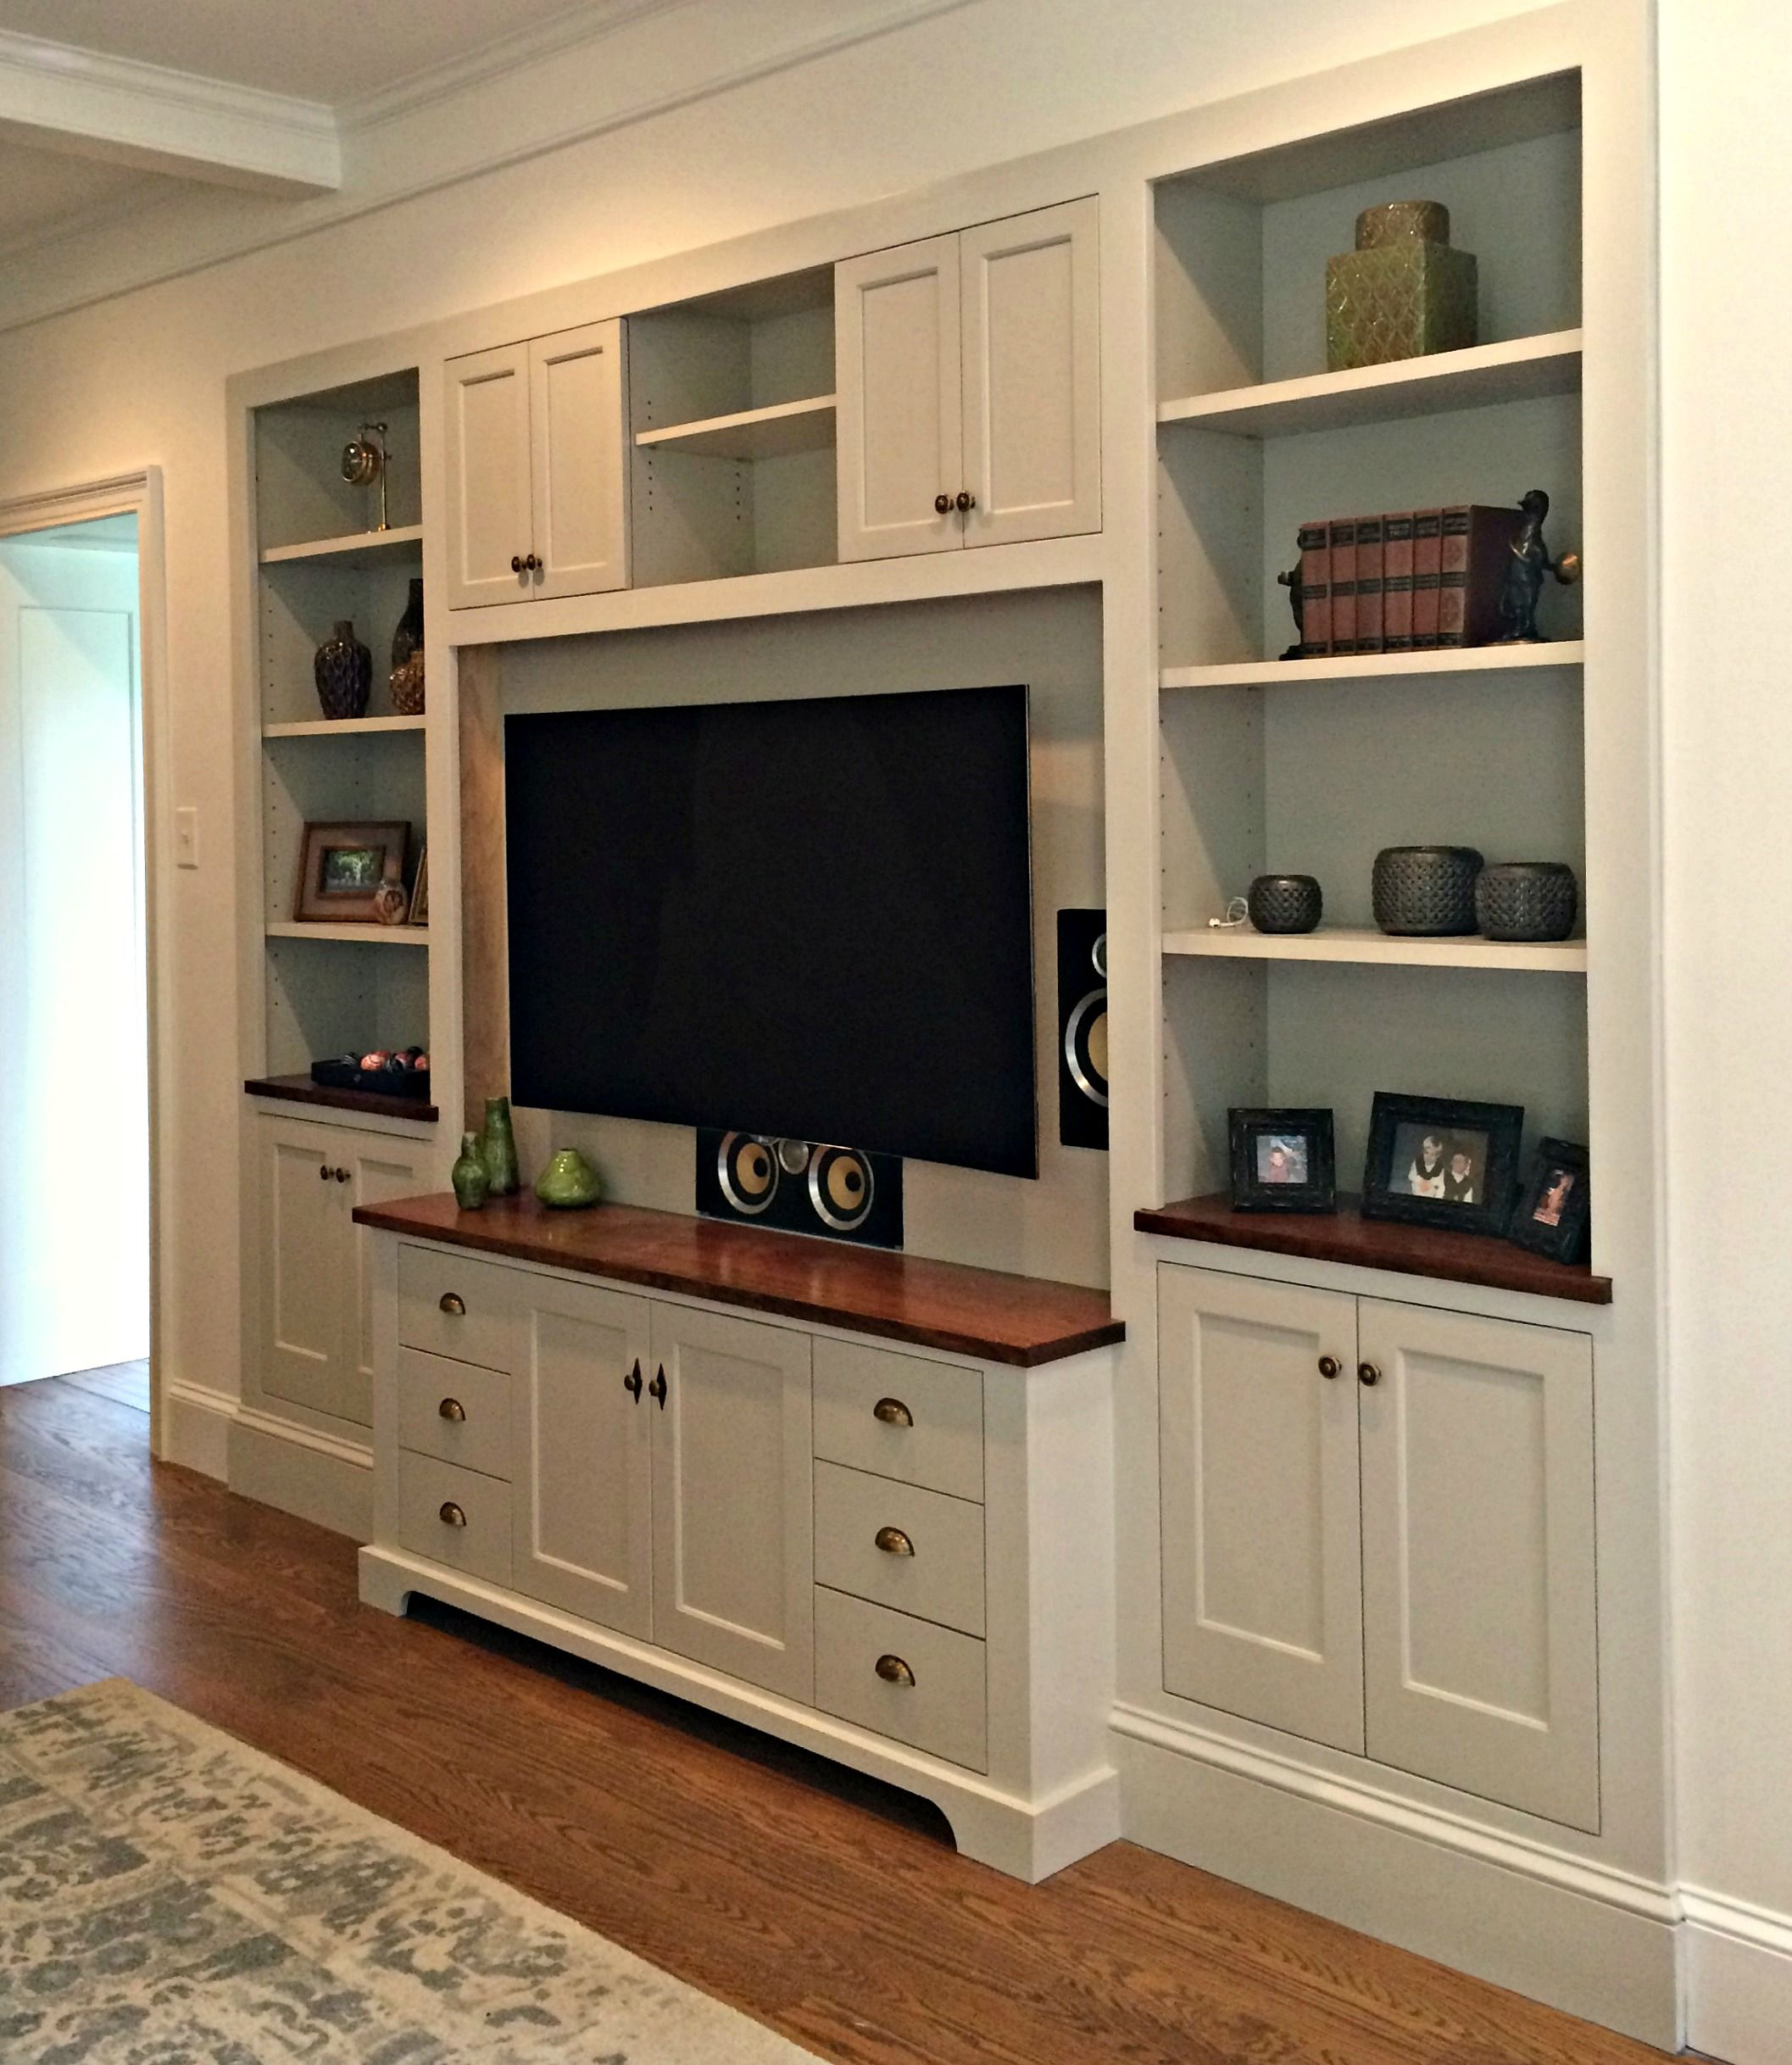 This Custom Entertainment Center Was Recessed Into The Wall Creating A Seamless Look Painted In